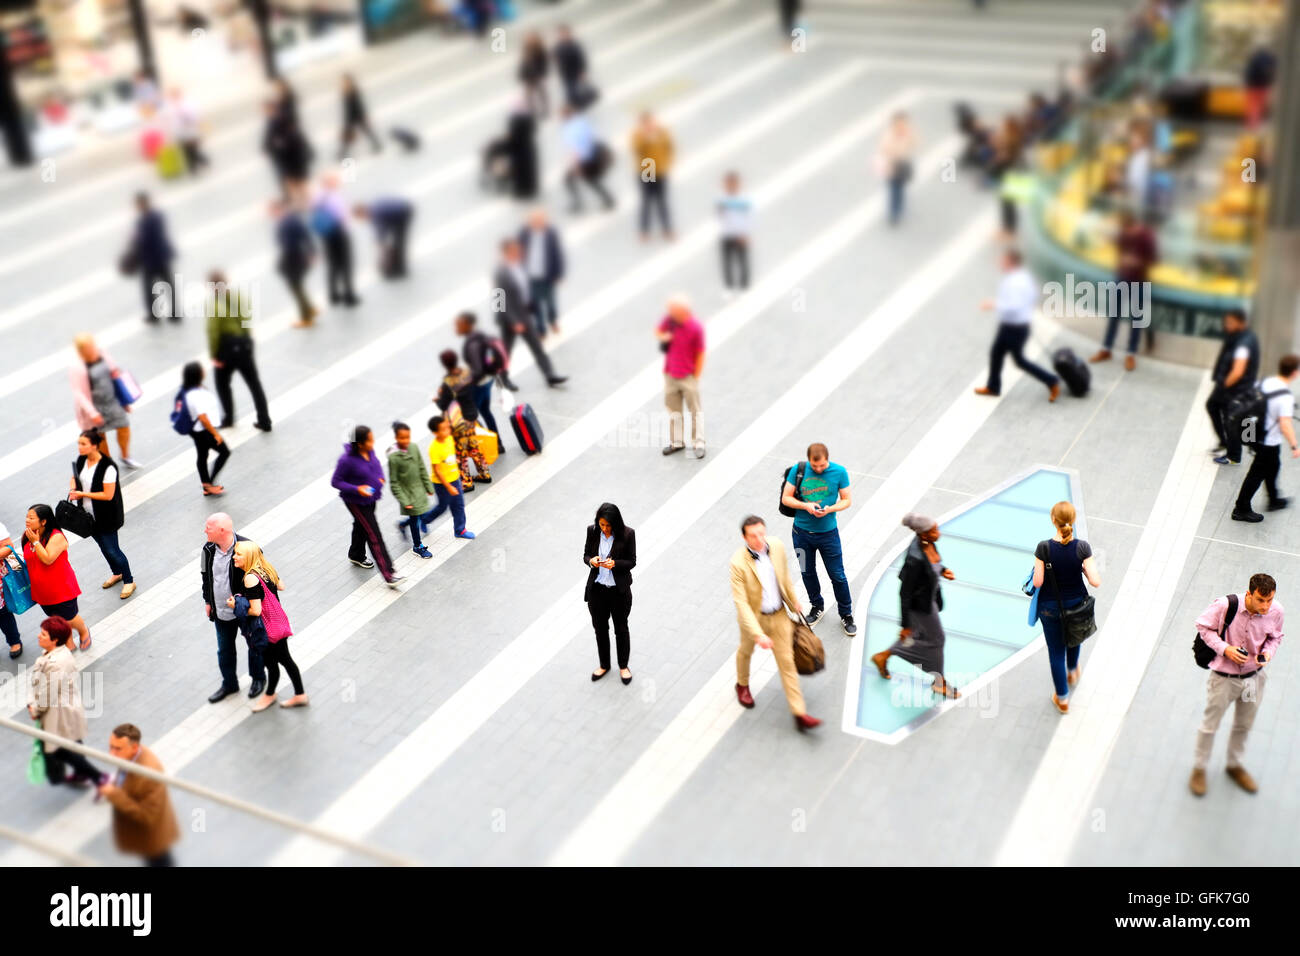 A busy commuter concourse for pedestrians but focused on a woman using her mobile as everyone rushes by. Shot in - Stock Image